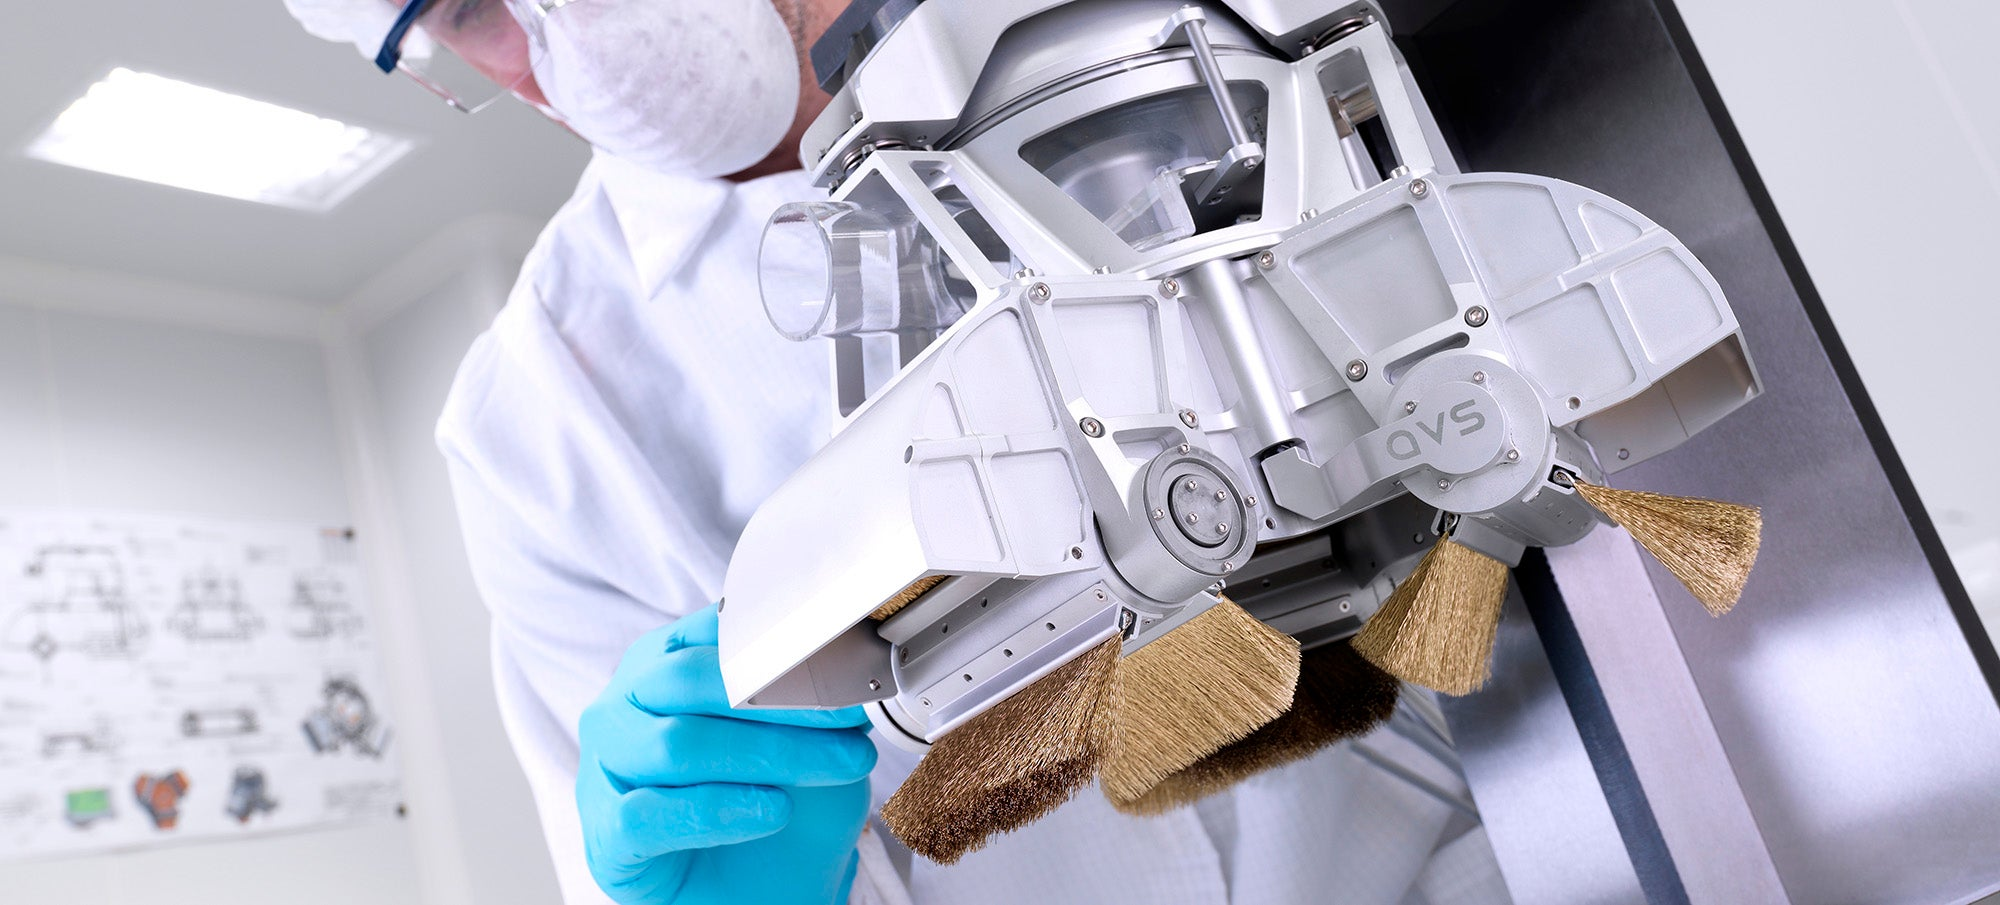 This Bizarre-Looking Device Is A Space Dustpan